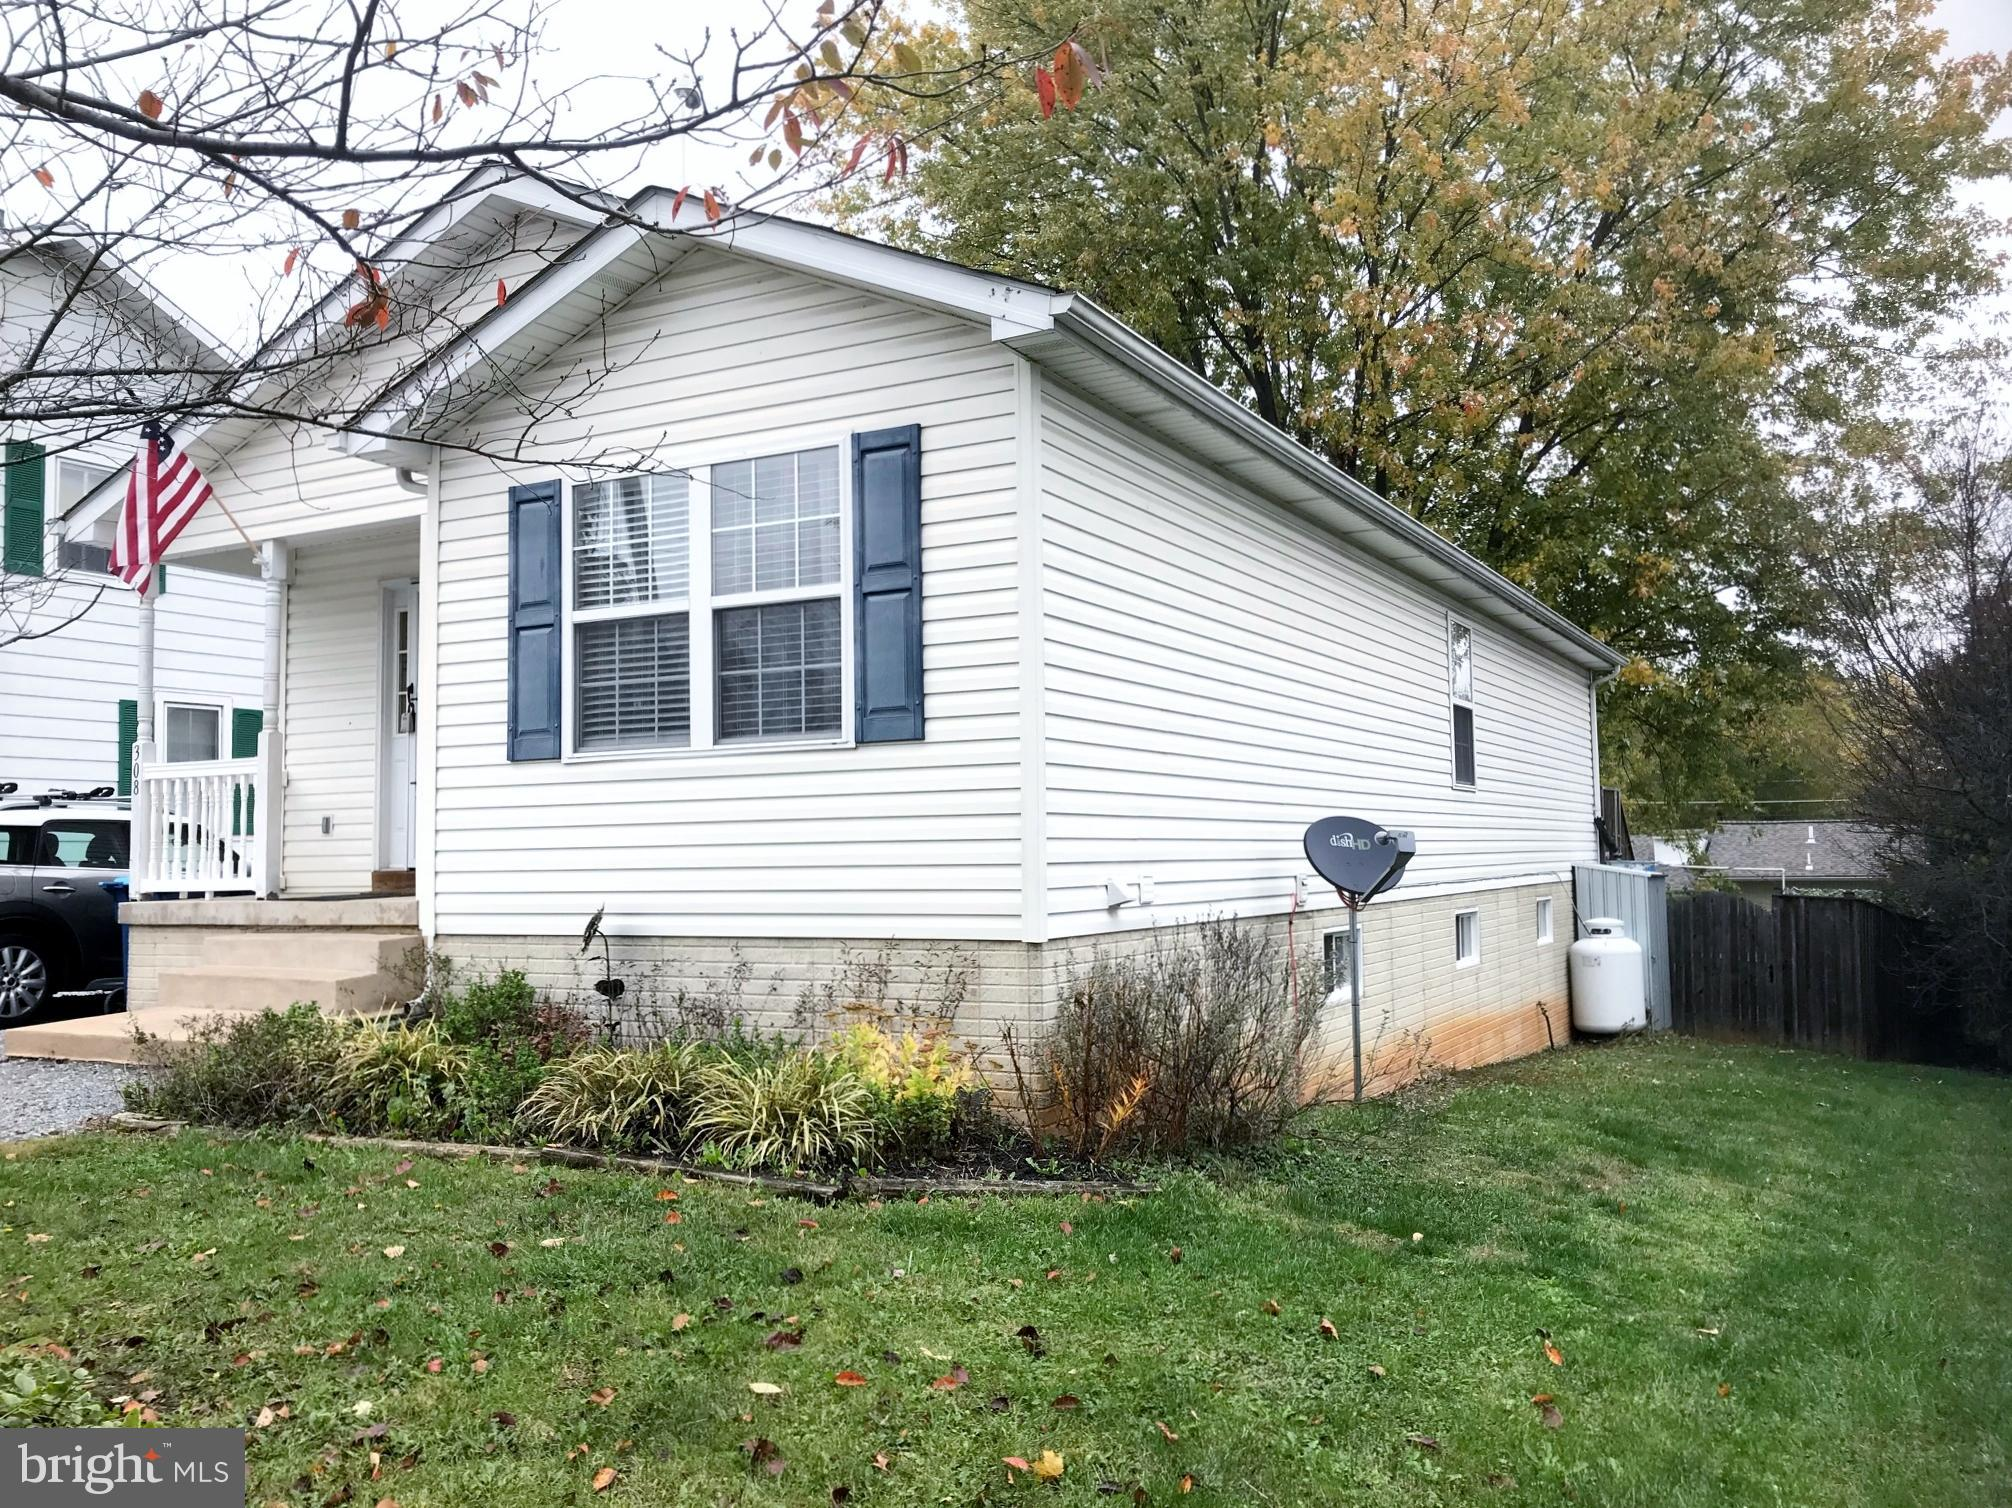 New Listing! A Great Berryville Home Built in 2004 & Offering 1,800+ Finished Sq. Ft. On 2 Levels! T